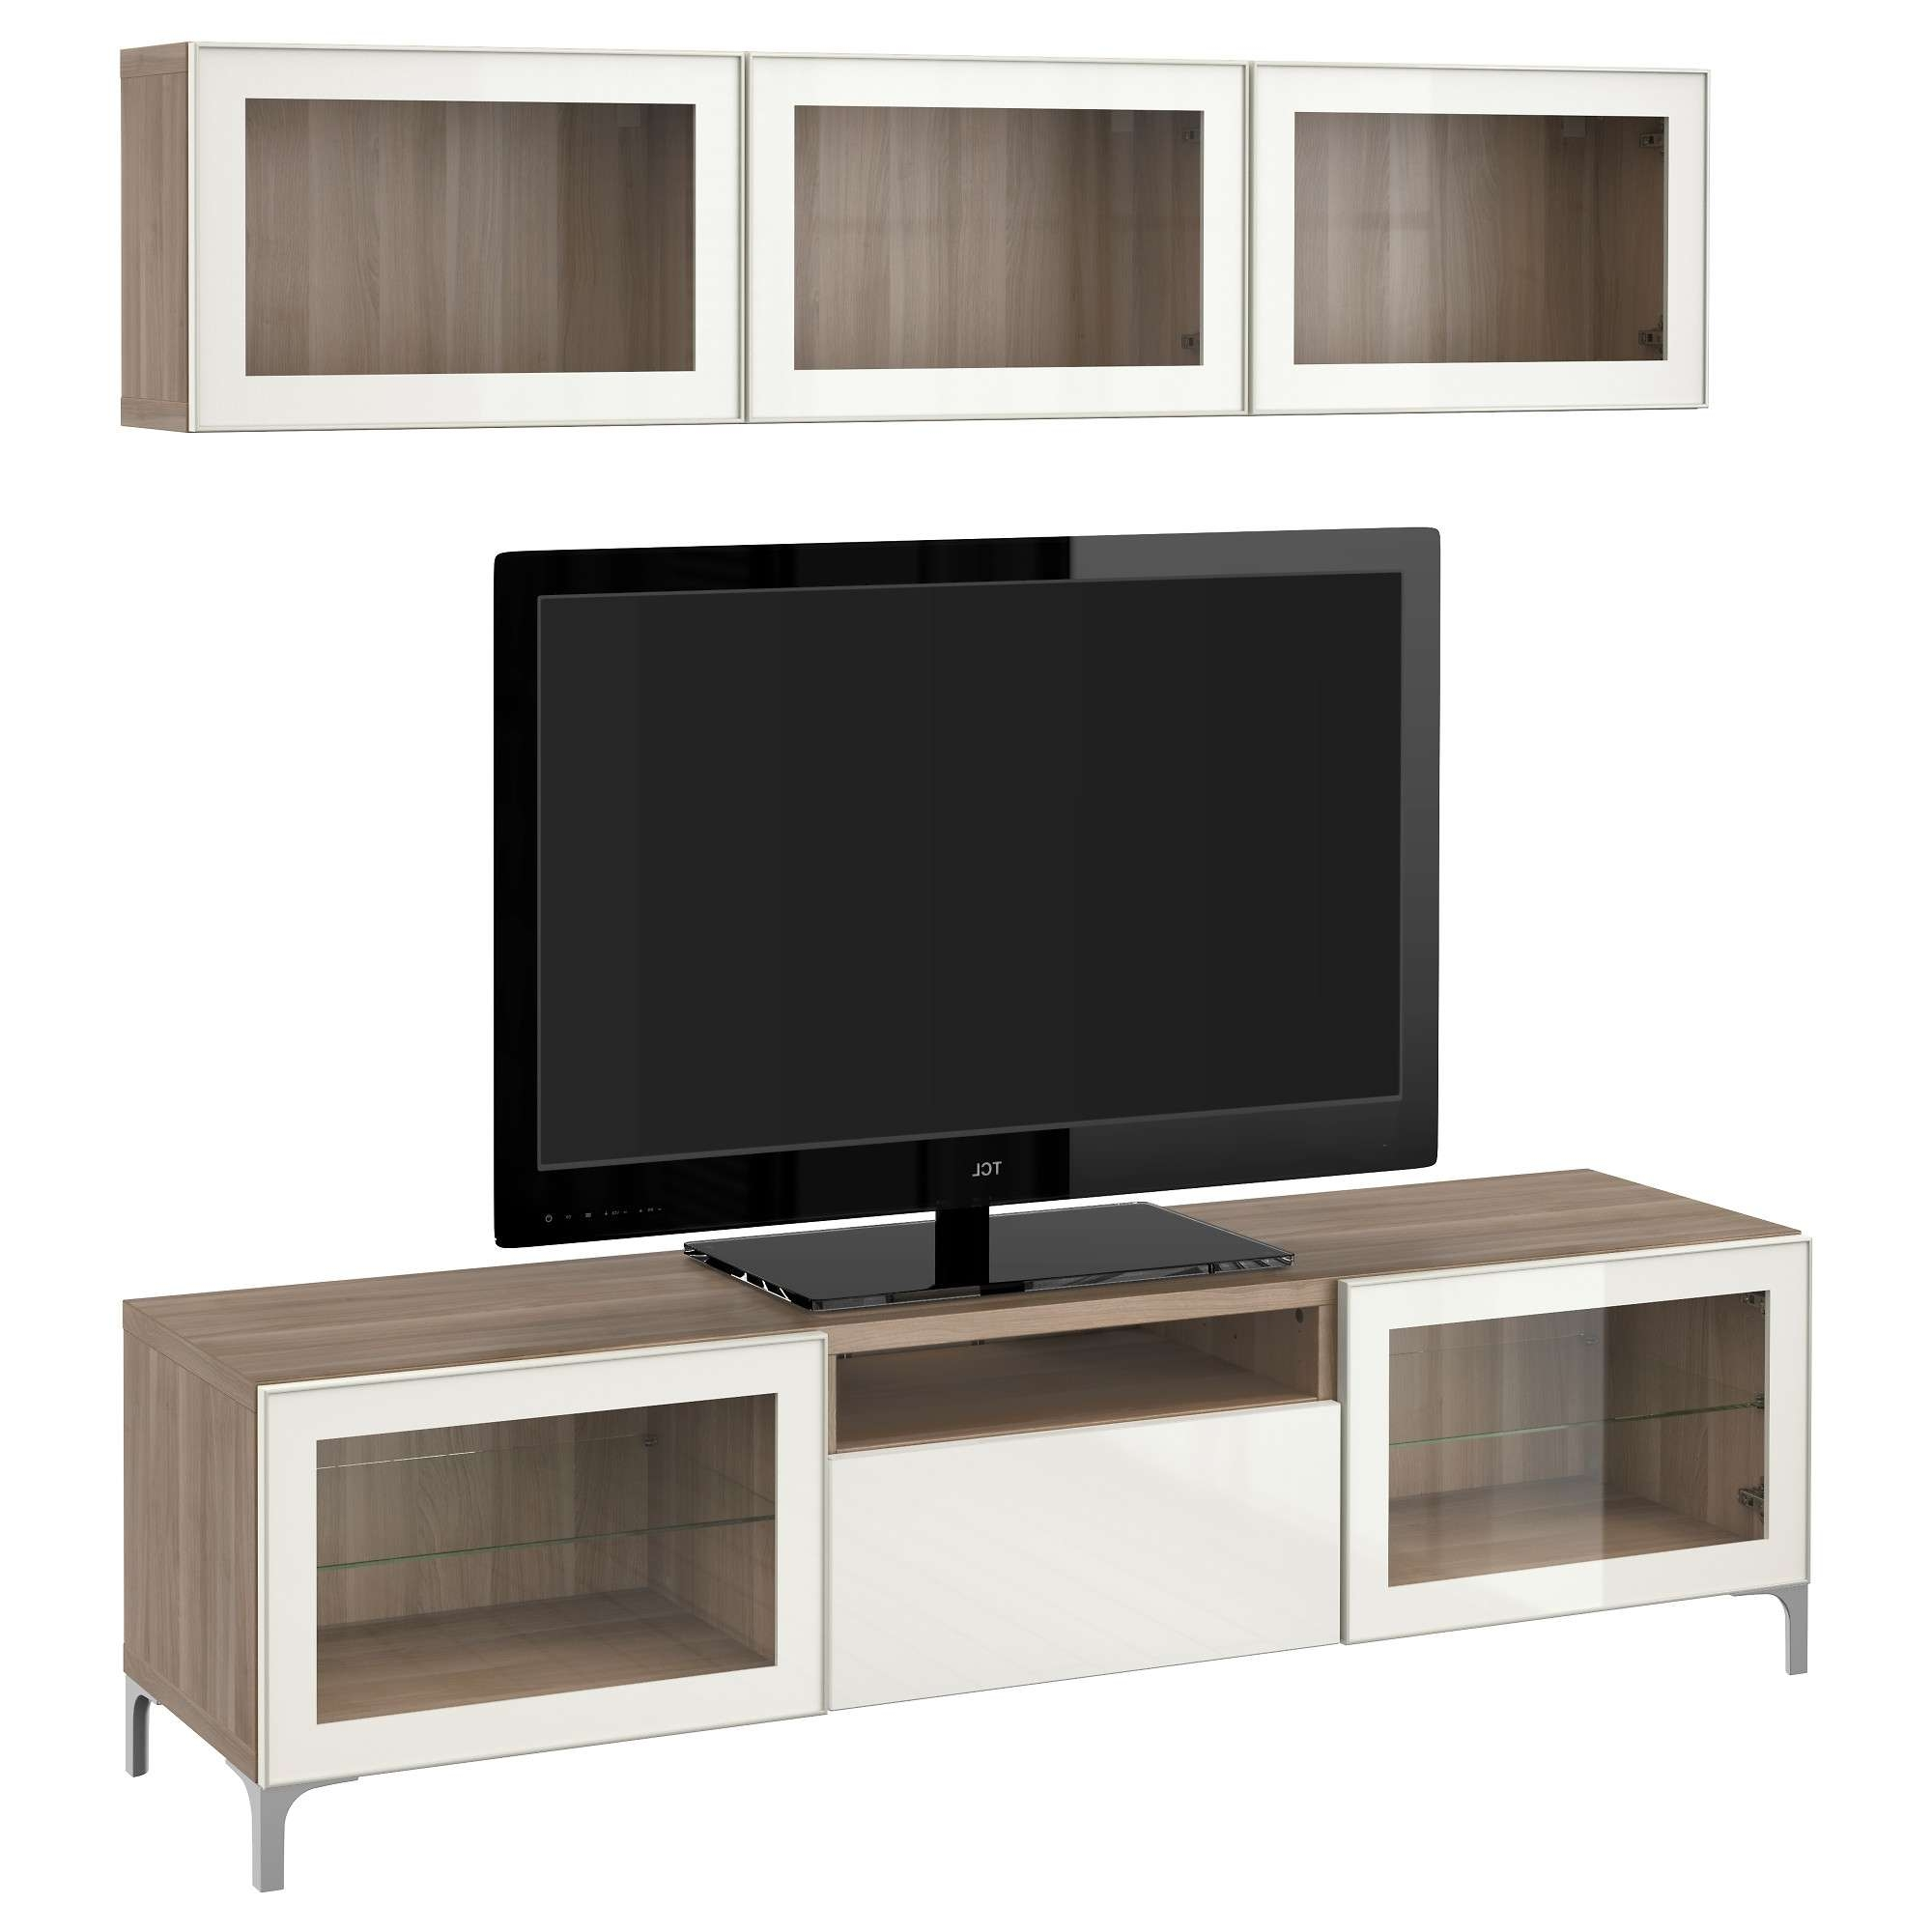 Black Tv Cabinet With Glass Doors Image Collections – Doors Design With Glass Tv Cabinets With Doors (View 19 of 20)